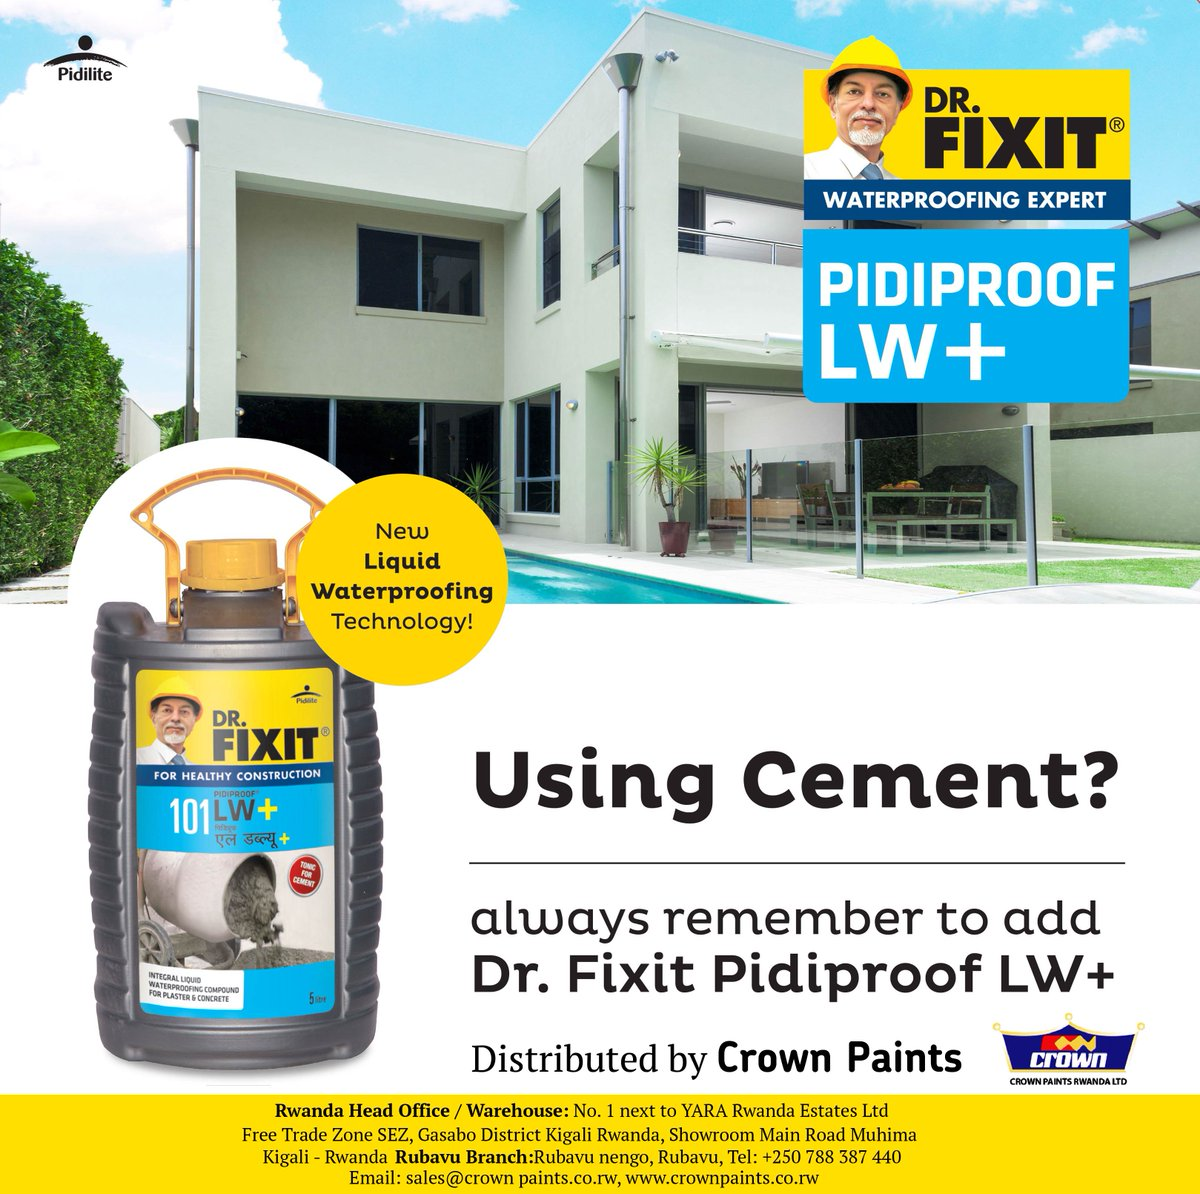 Crown Paint Rwanda On Twitter Buy Dr Fixit Pidiproof Lw An Integral Liquid Waterproofing Admixture For Concrete Cement At The Best Price In Rwanda My250 Meetdrfixit Https T Co Jfodmquxlc